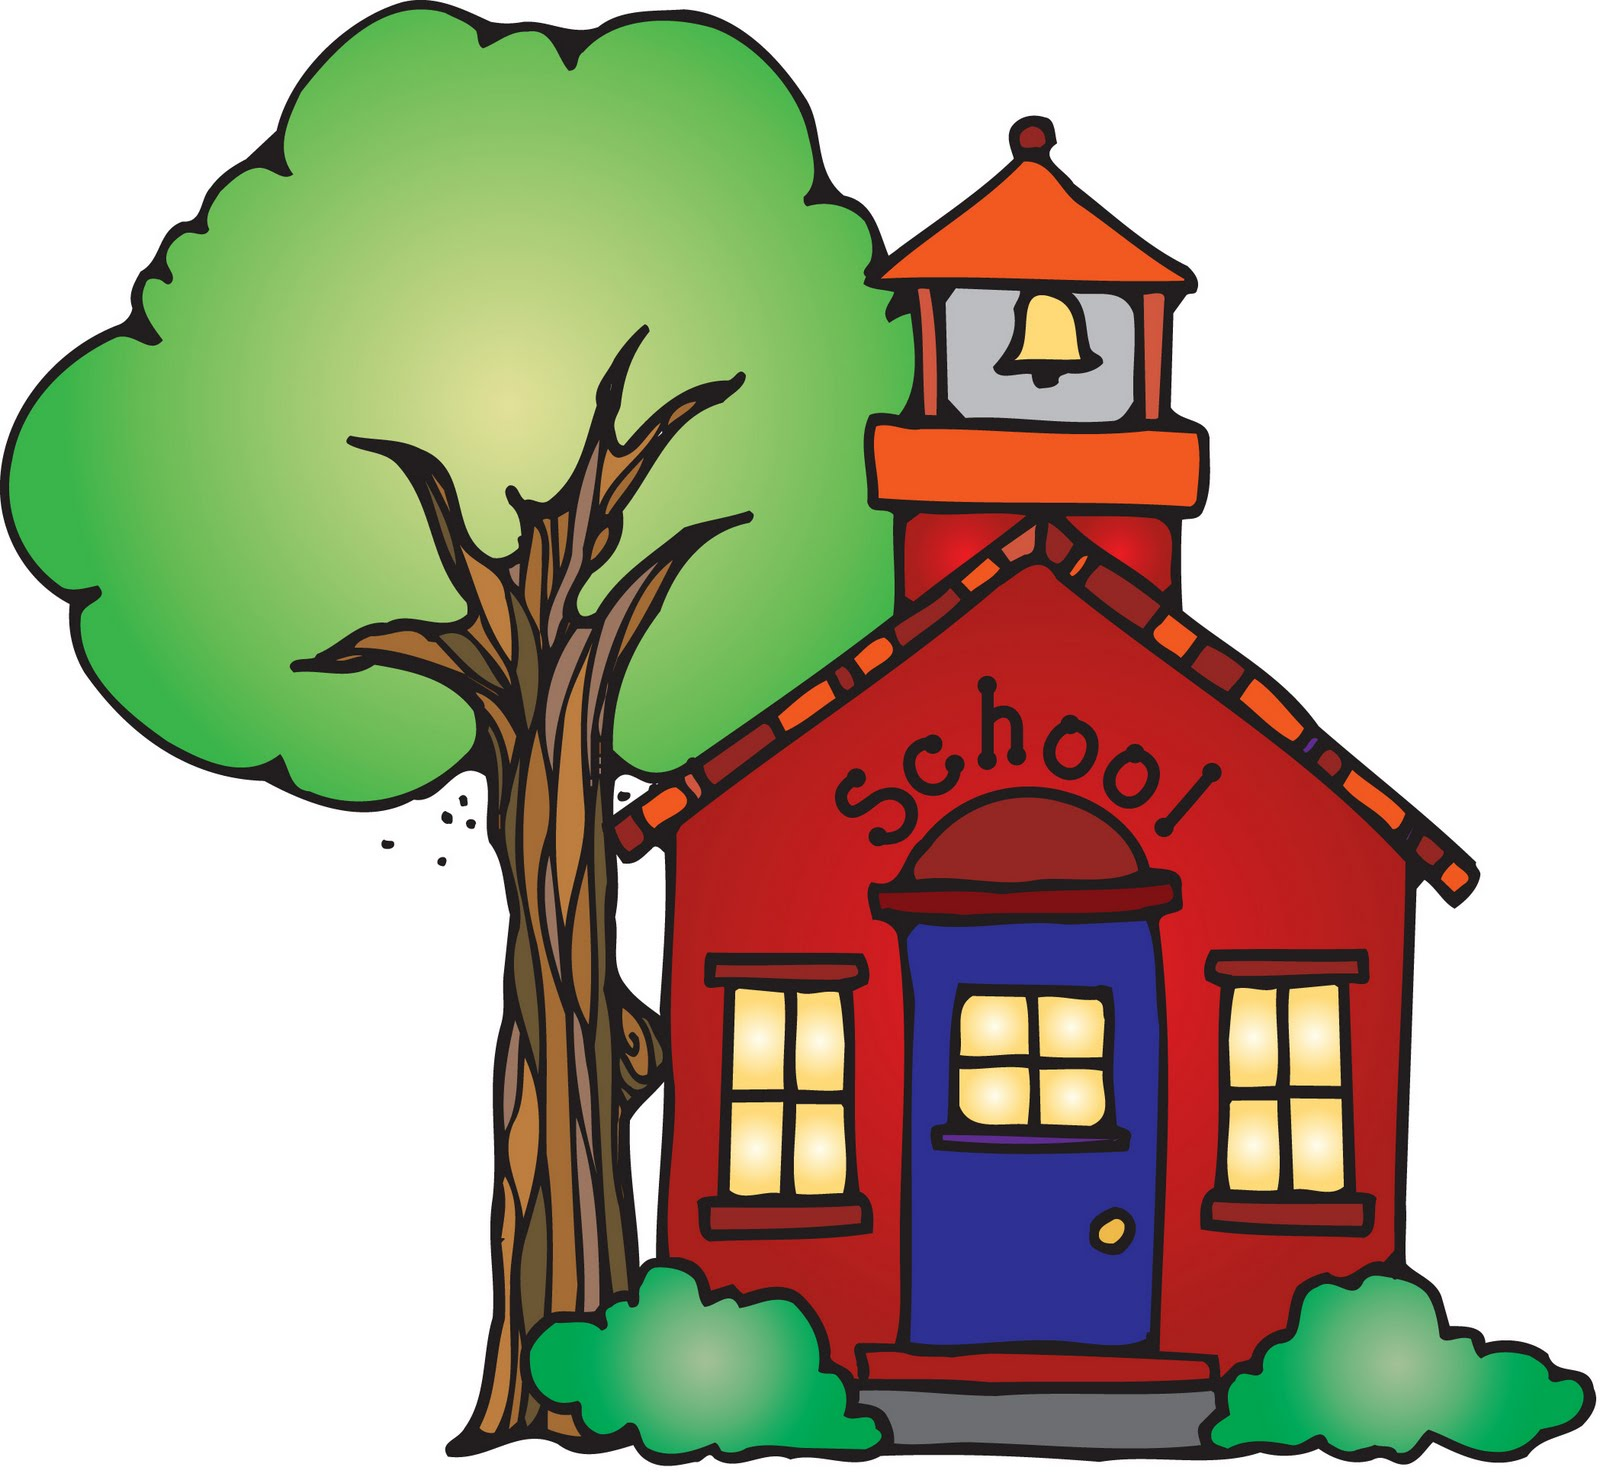 school house clipart at getdrawings com free for personal use rh getdrawings com